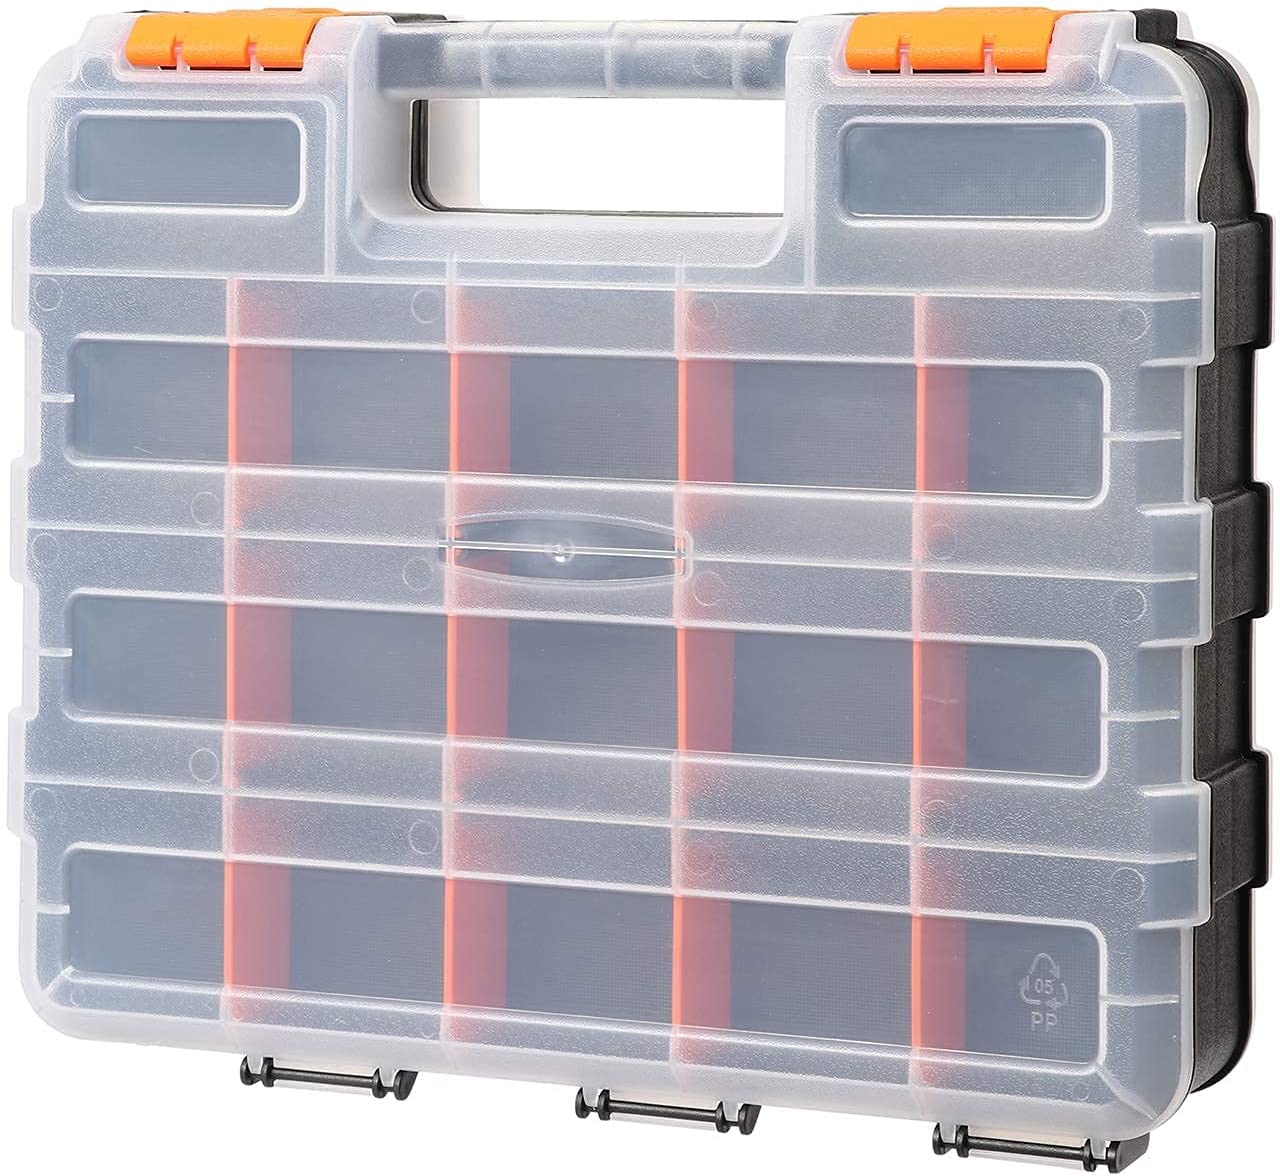 CASOMAN Double Side Max 65% OFF Tool Organizer Resistant with Max 40% OFF Polymer Impact